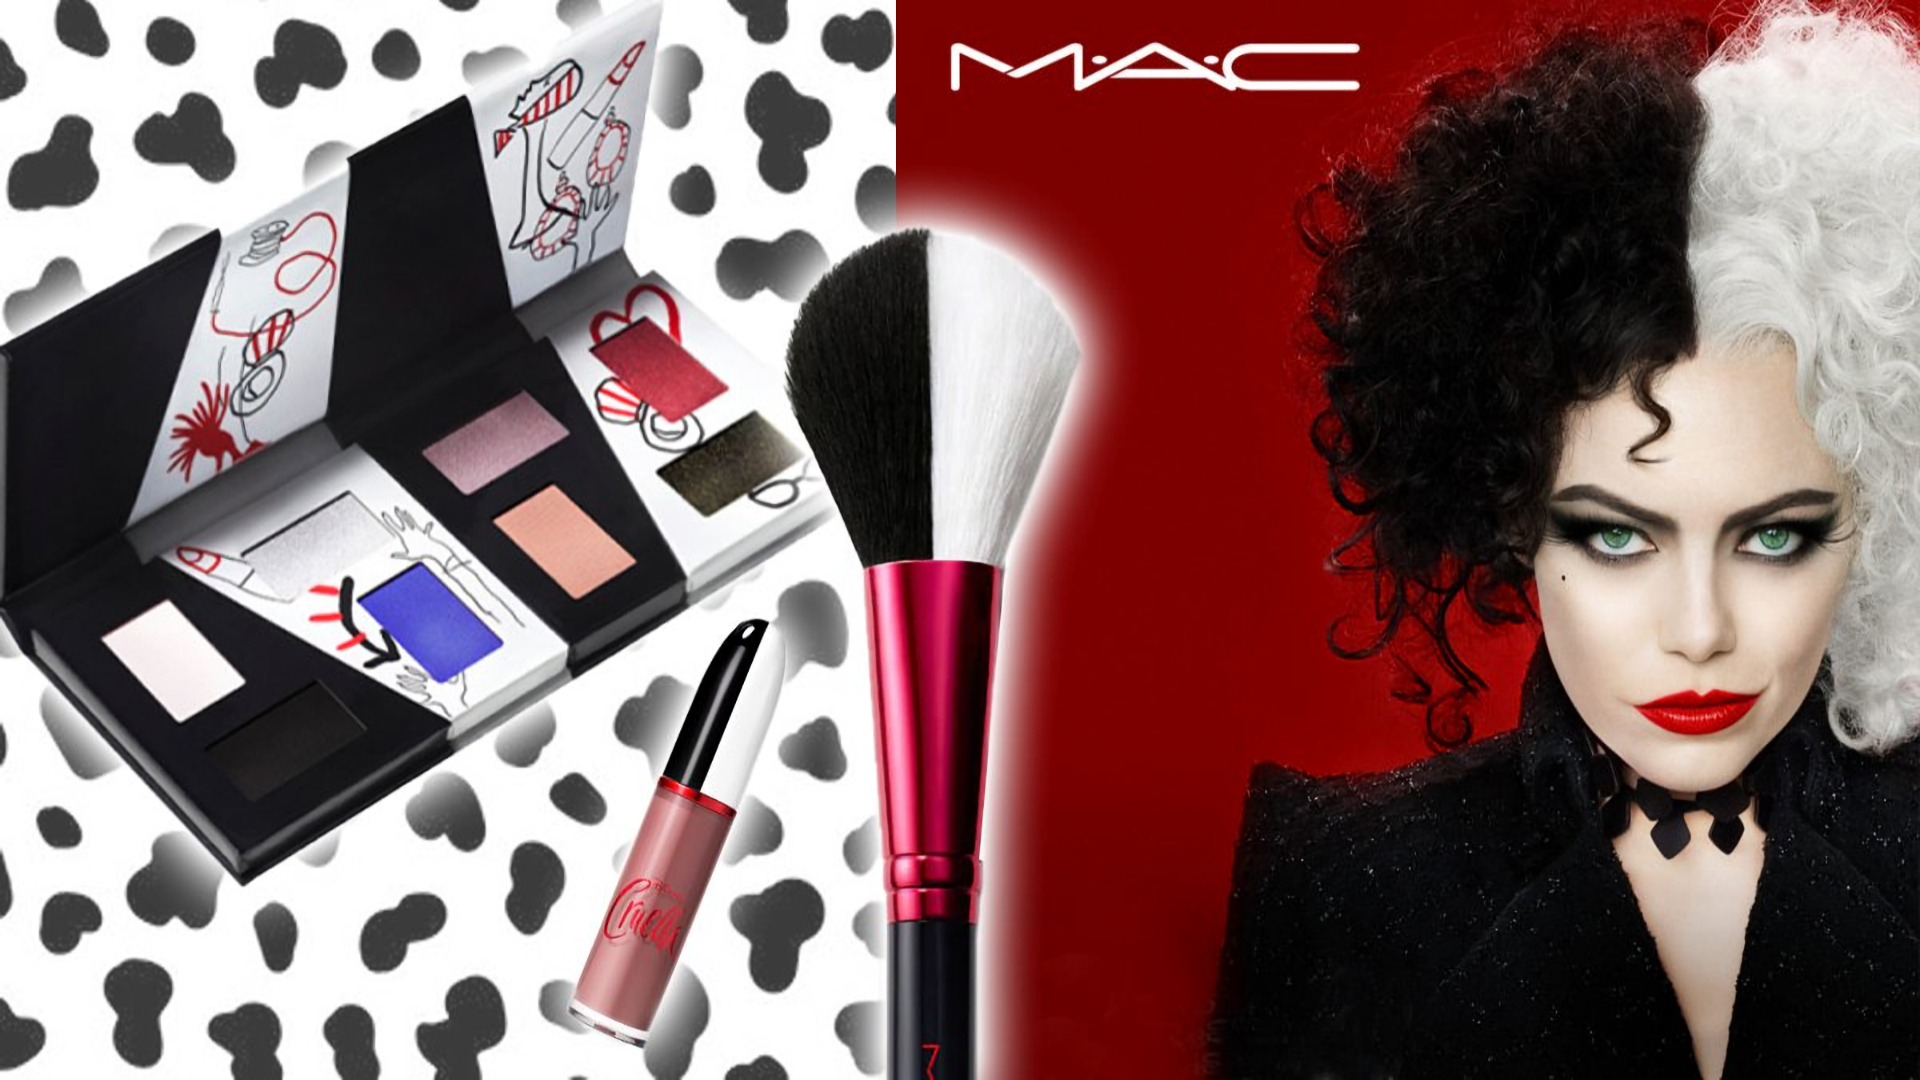 The Disney Cruella Collection By MAC